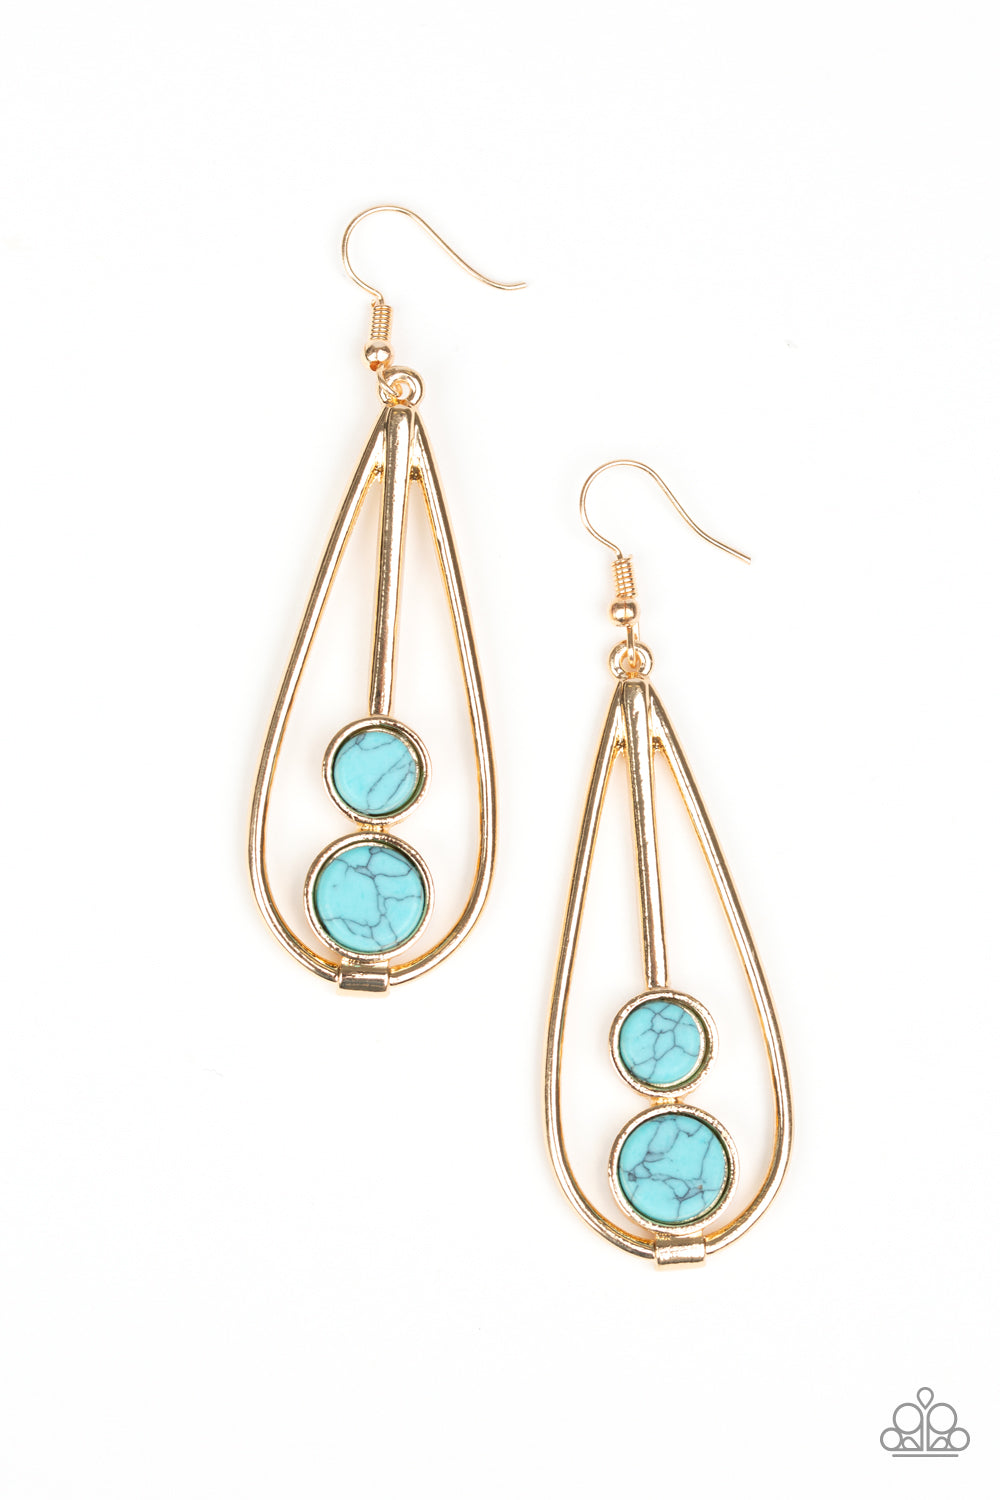 Paparazzi Natural Nova Gold Pierced Earrings